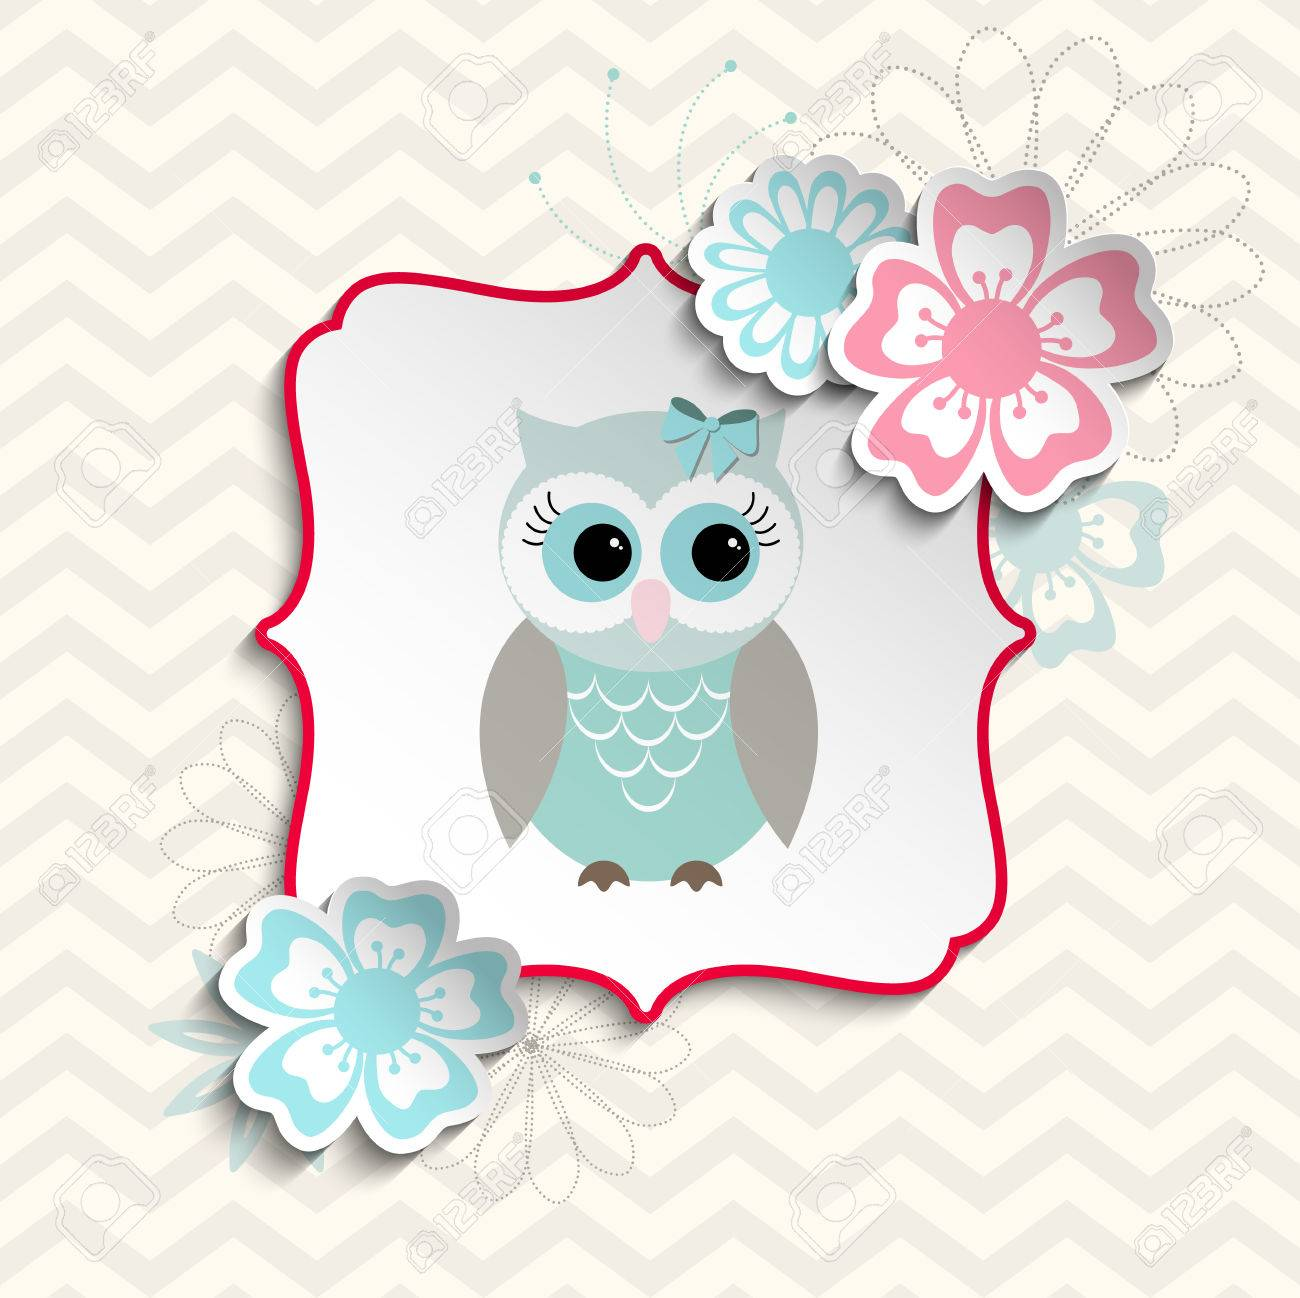 Blue And Gray Cute Owl Sitting In Abstract Shabby Chic Frame With Flowers On Chevron